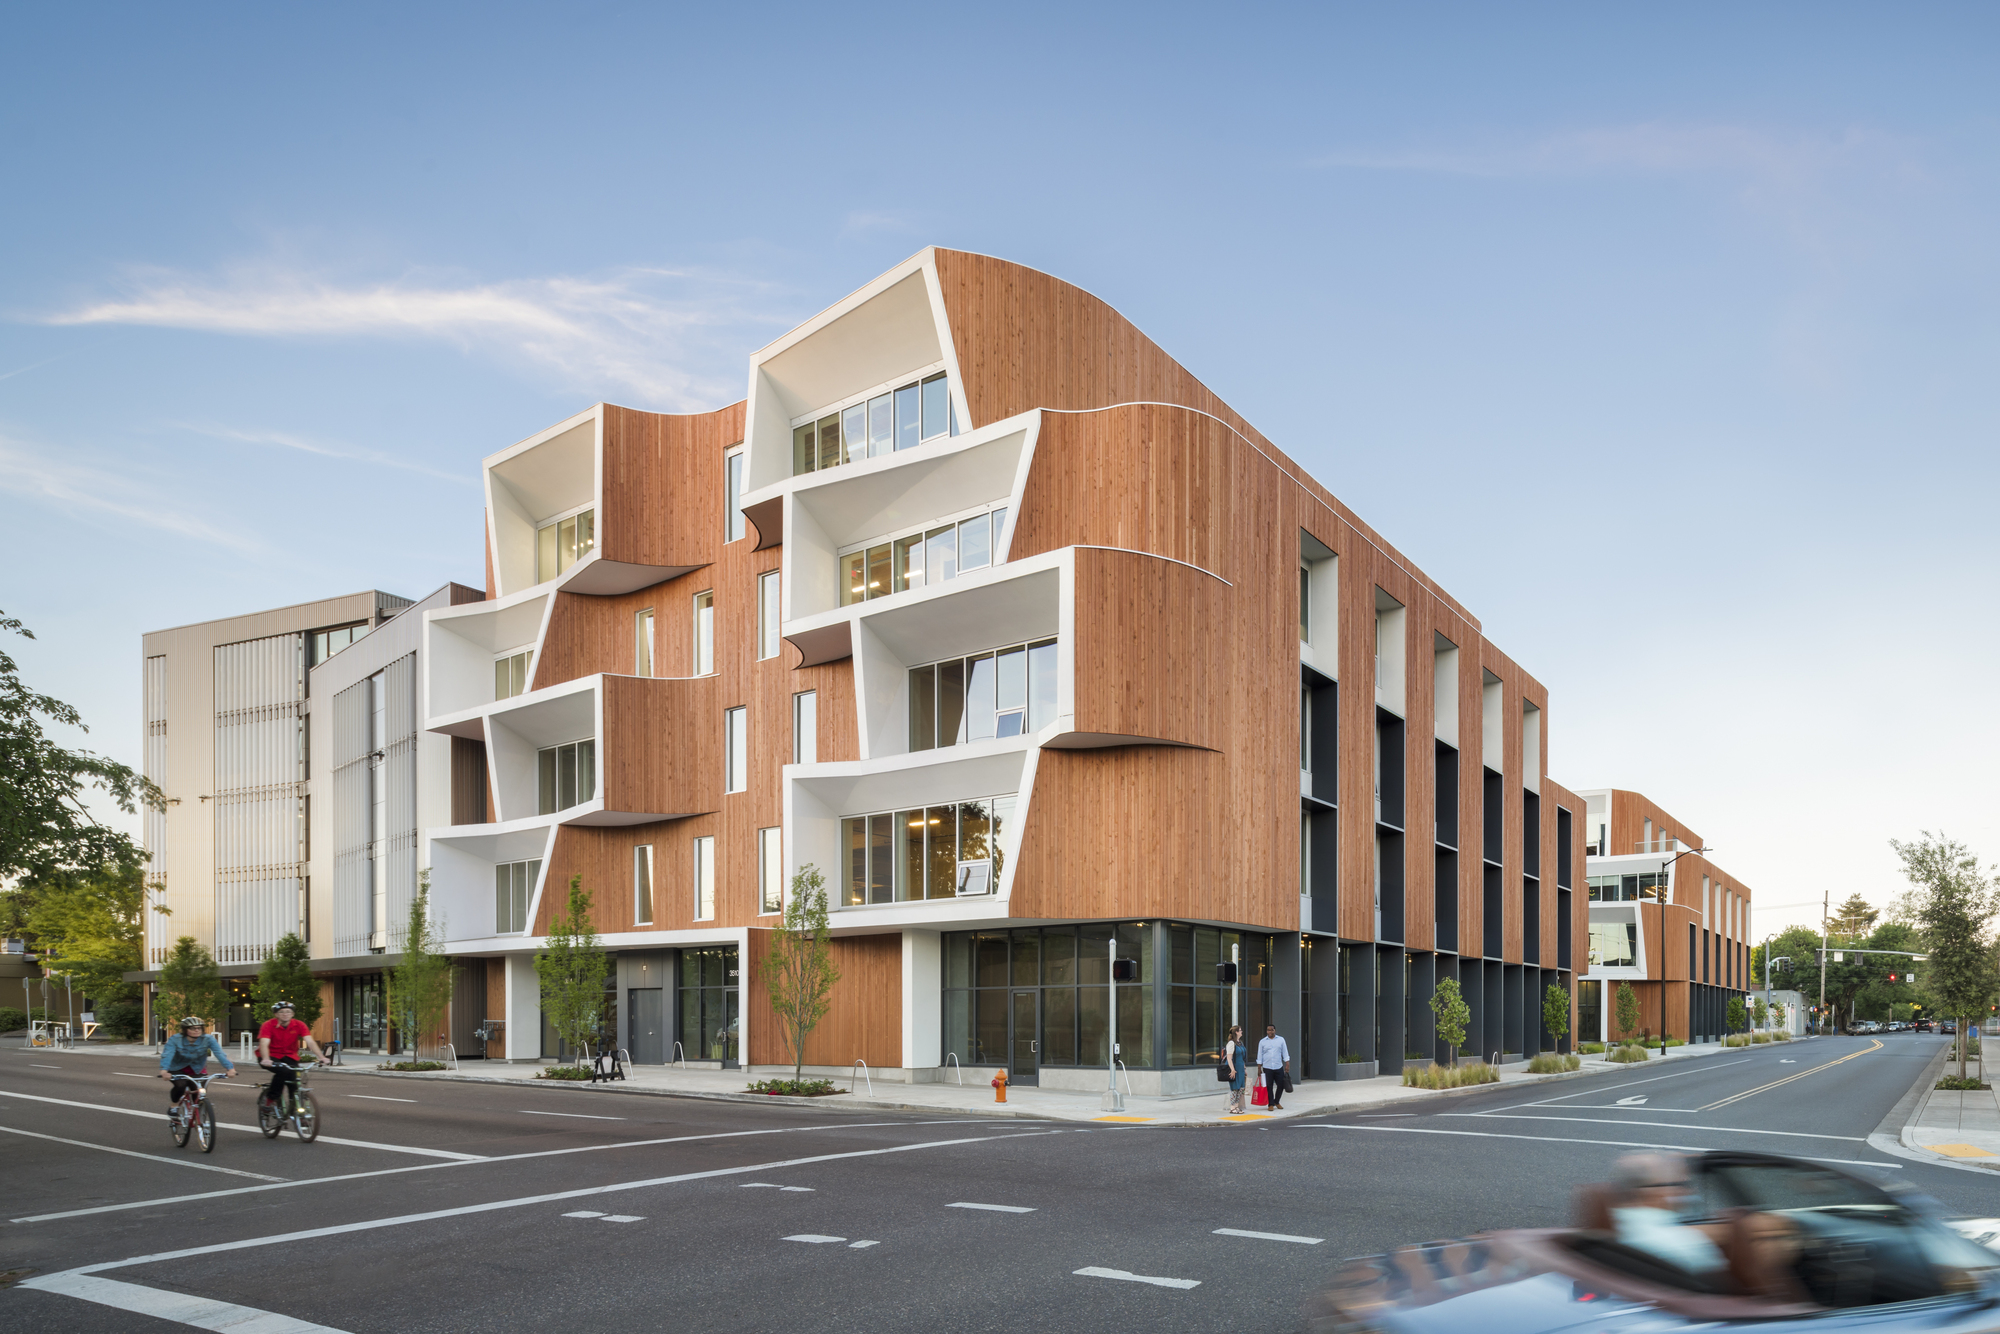 Architecture one north / holst architecture | archdaily